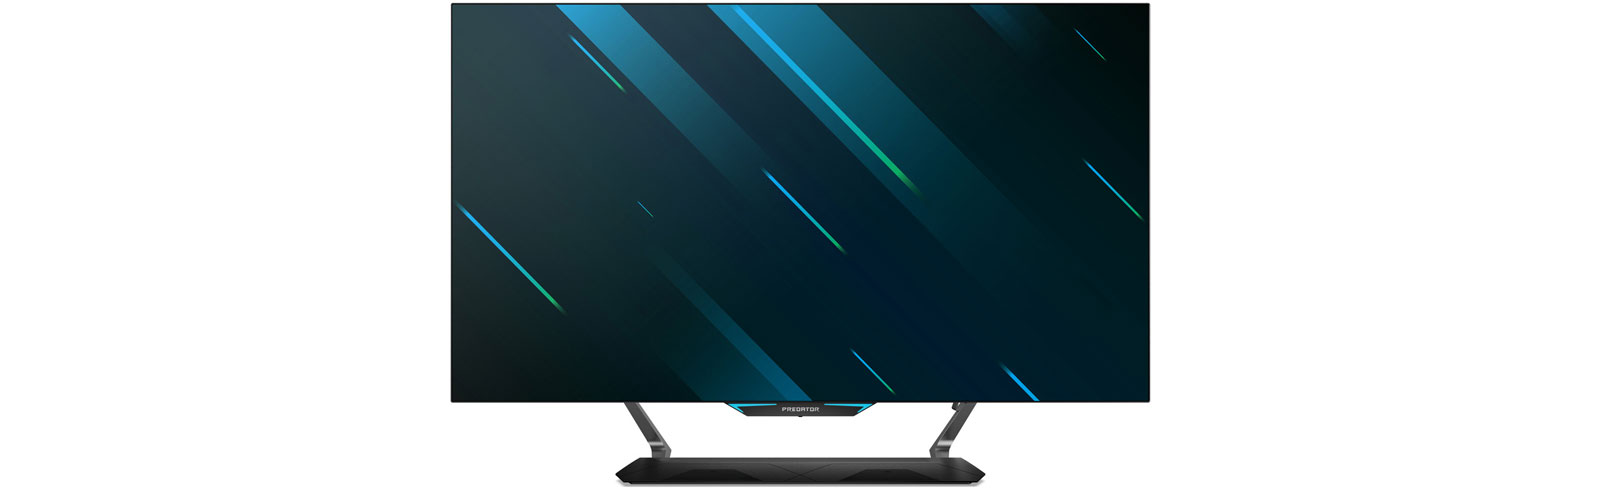 Acer Predator CG552K with a 55-inch 4K OLED panel is announced